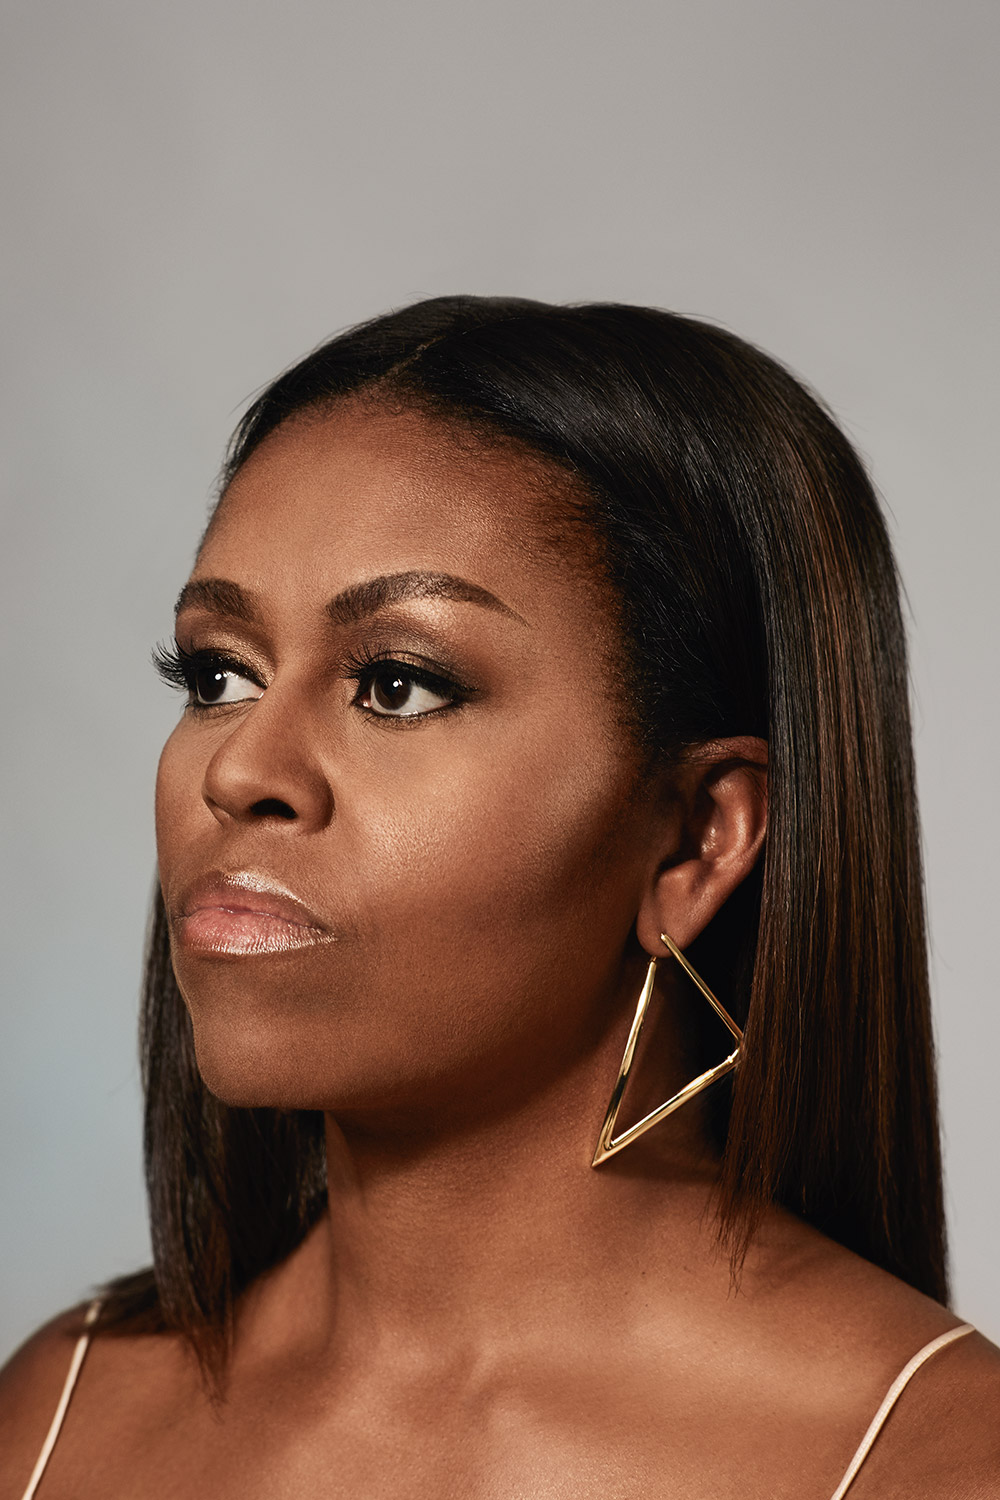 Michelle Artist Commissions In 2020 Michelle Obama Powerful Women First Lady